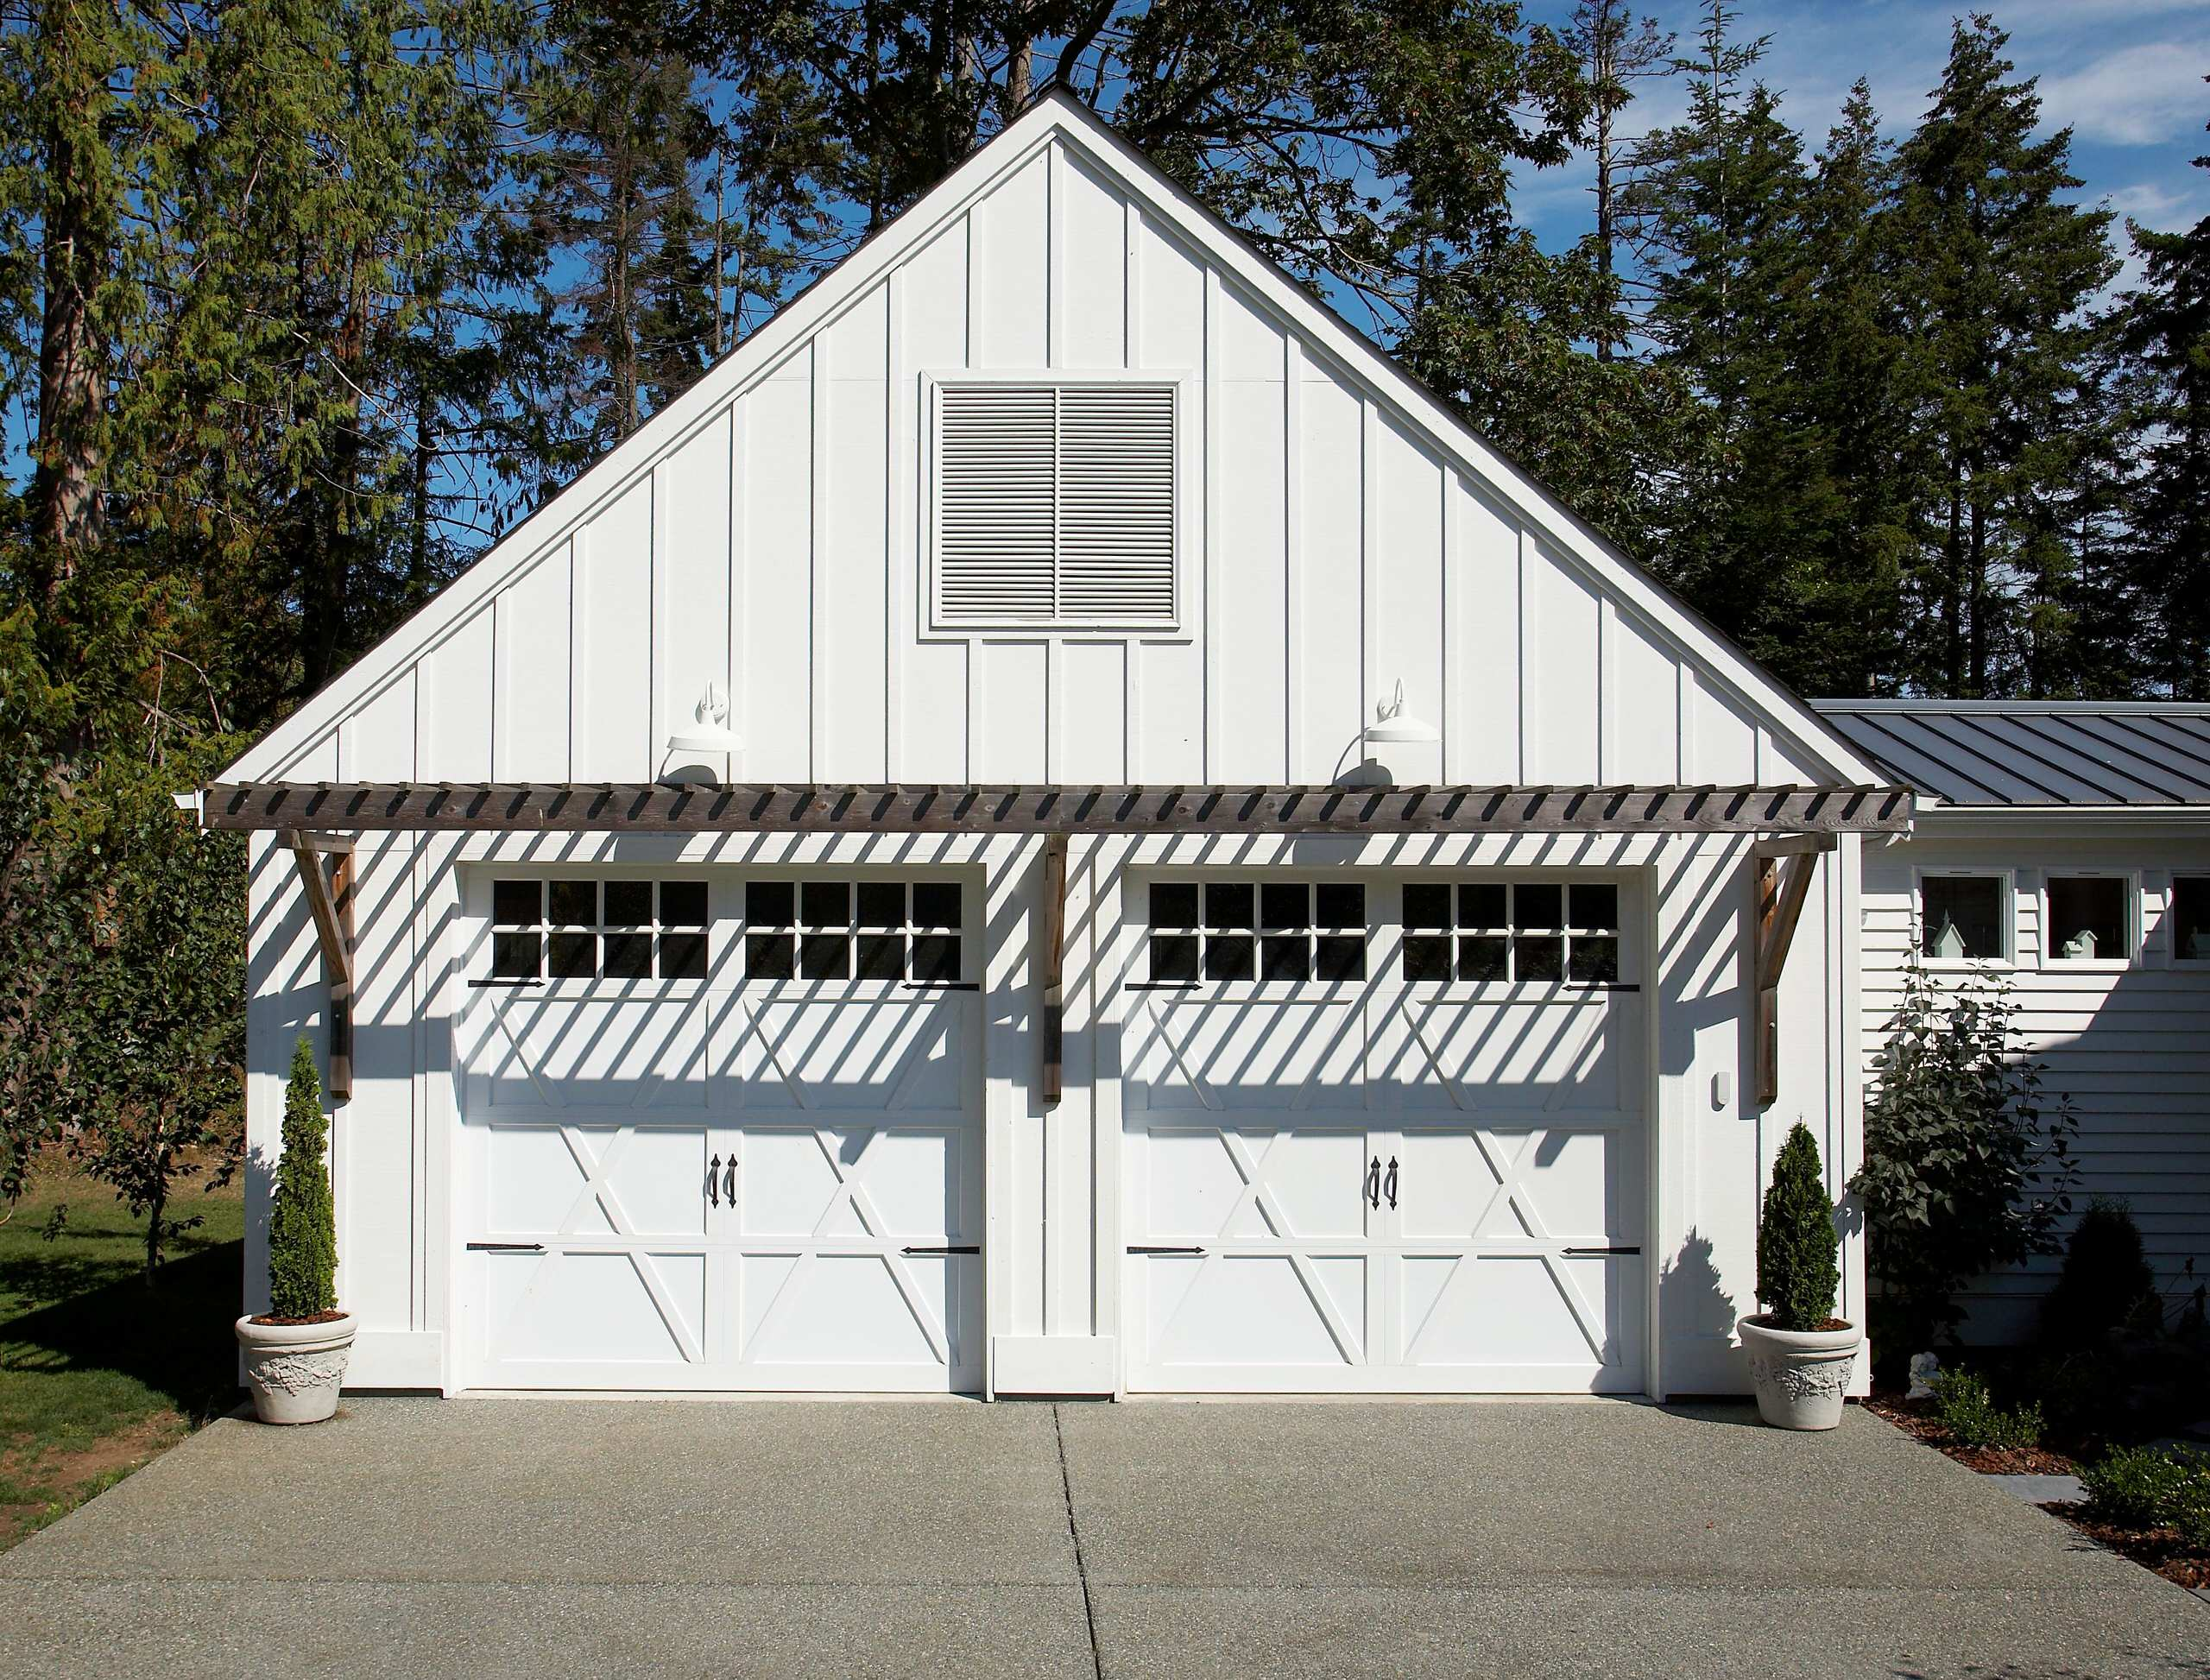 2 Car Garage Dimensions Eclectic Garage Board and Batten Siding Carriage Doors